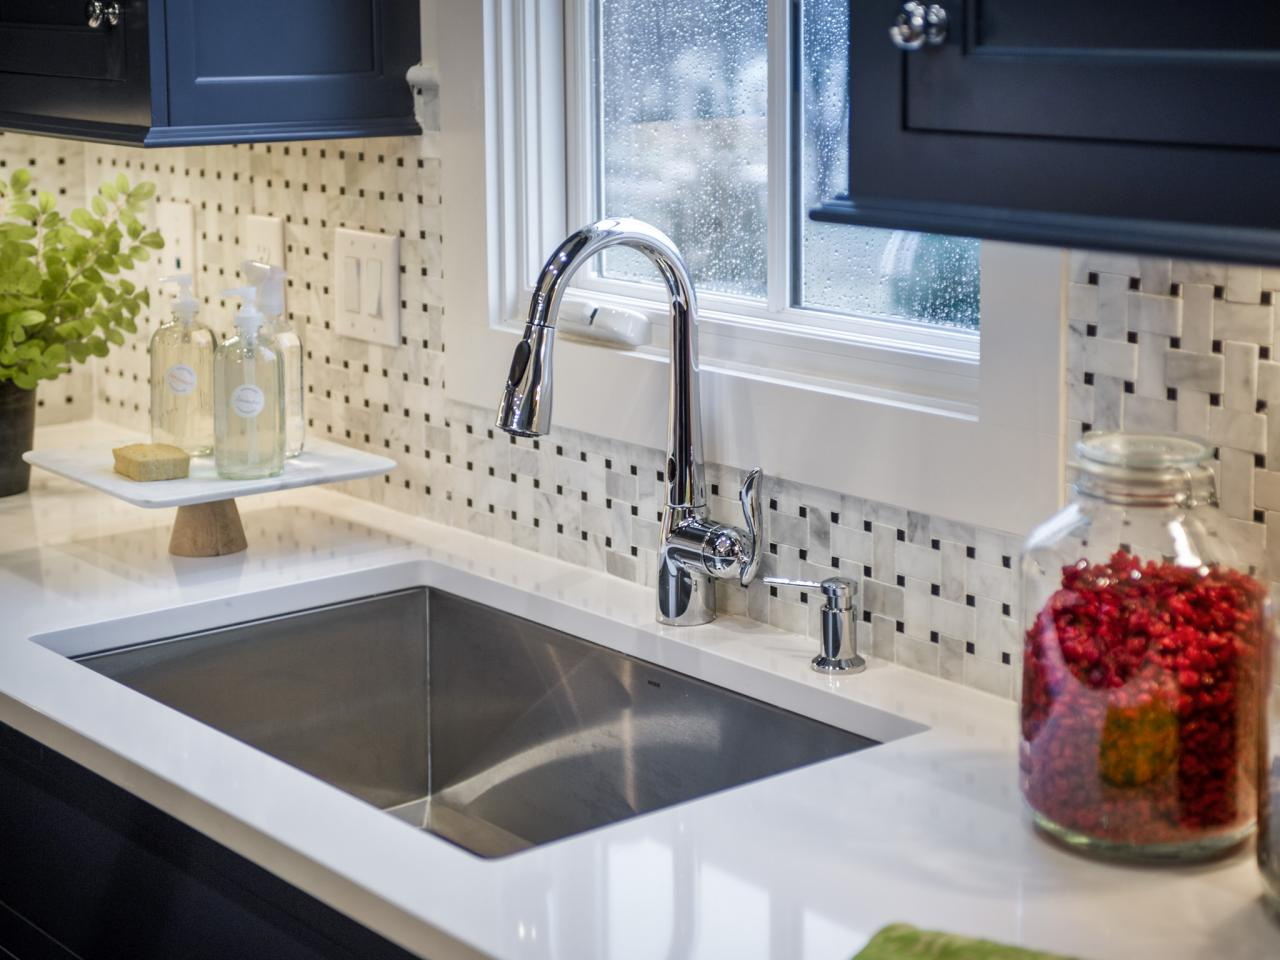 countertops practically maintenance free engineered quartz countertops ...